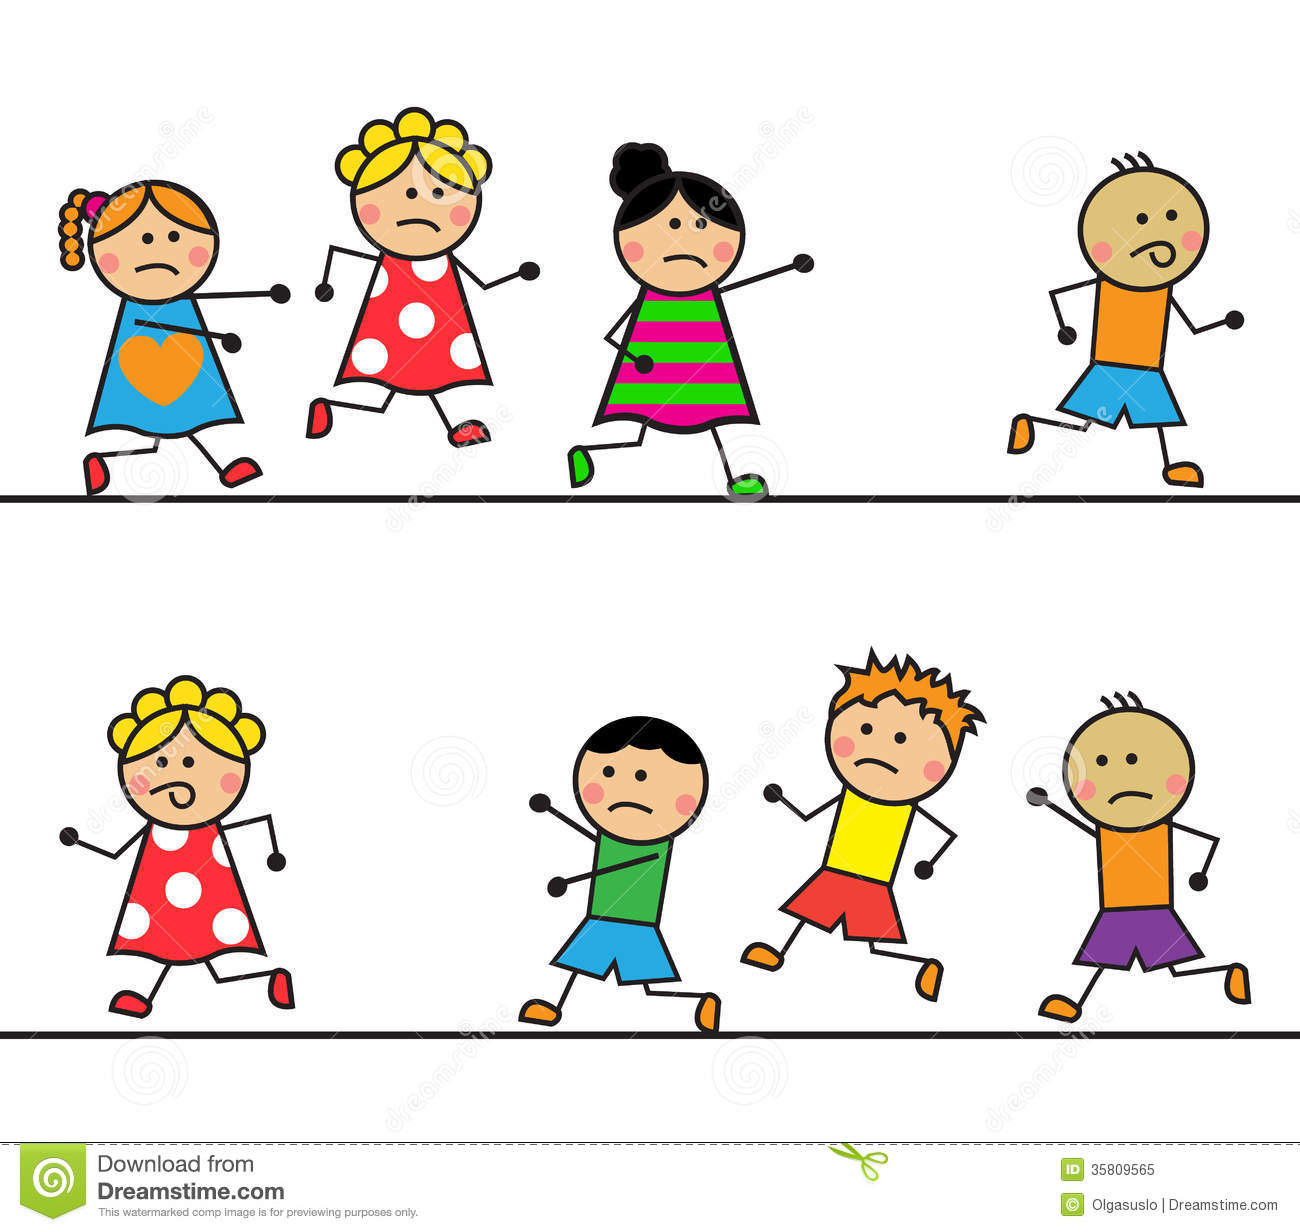 Fear Game Wallpaper Little Girl Cartoon People Run And Catch Up With Each Other Stock